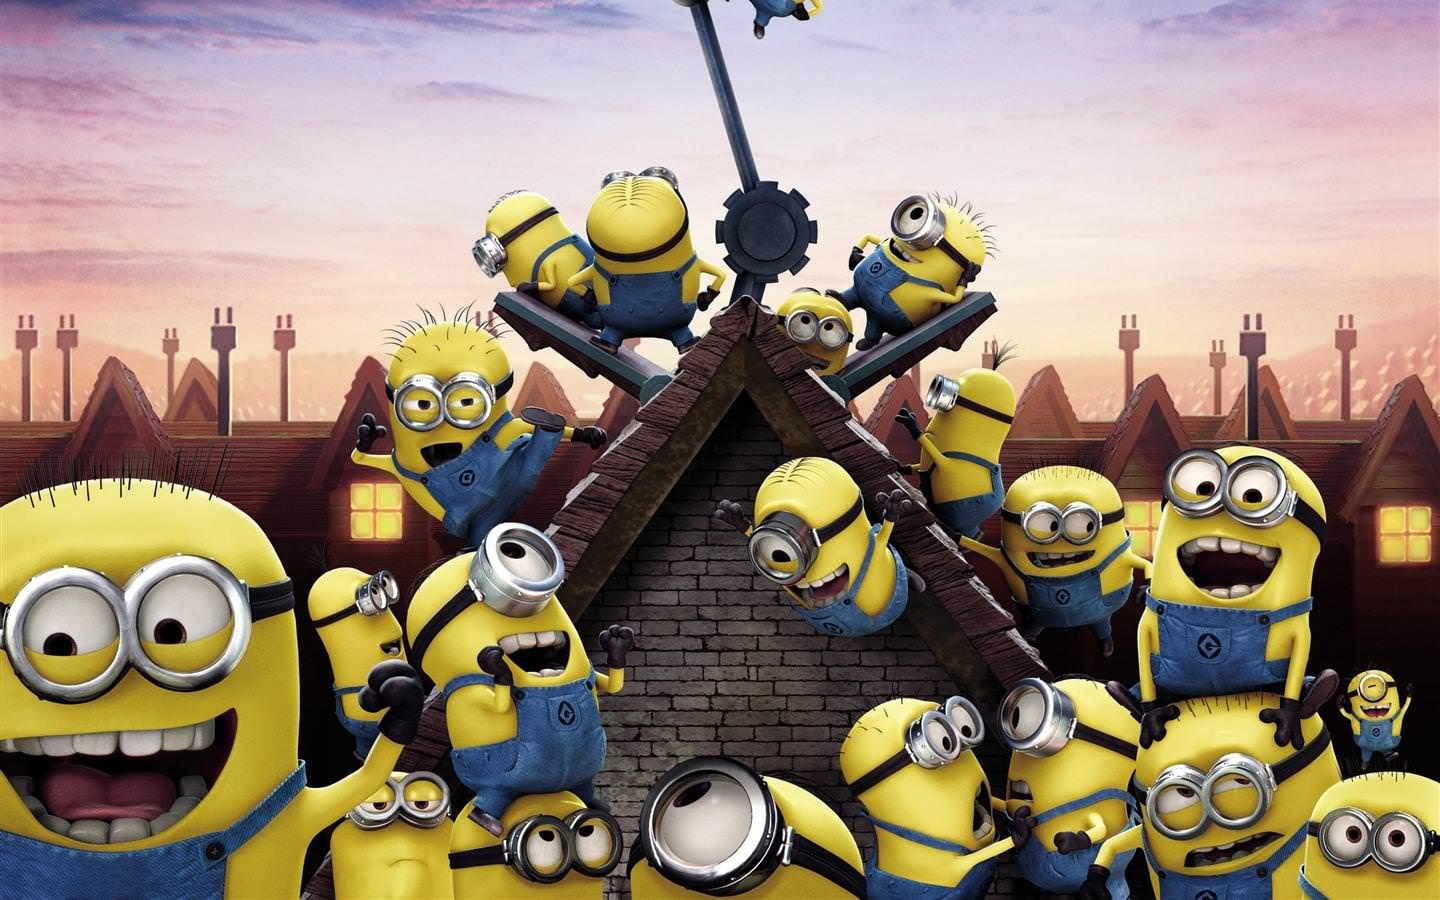 21+ Minion Wallpapers, Backgrounds, Images | FreeCreatives